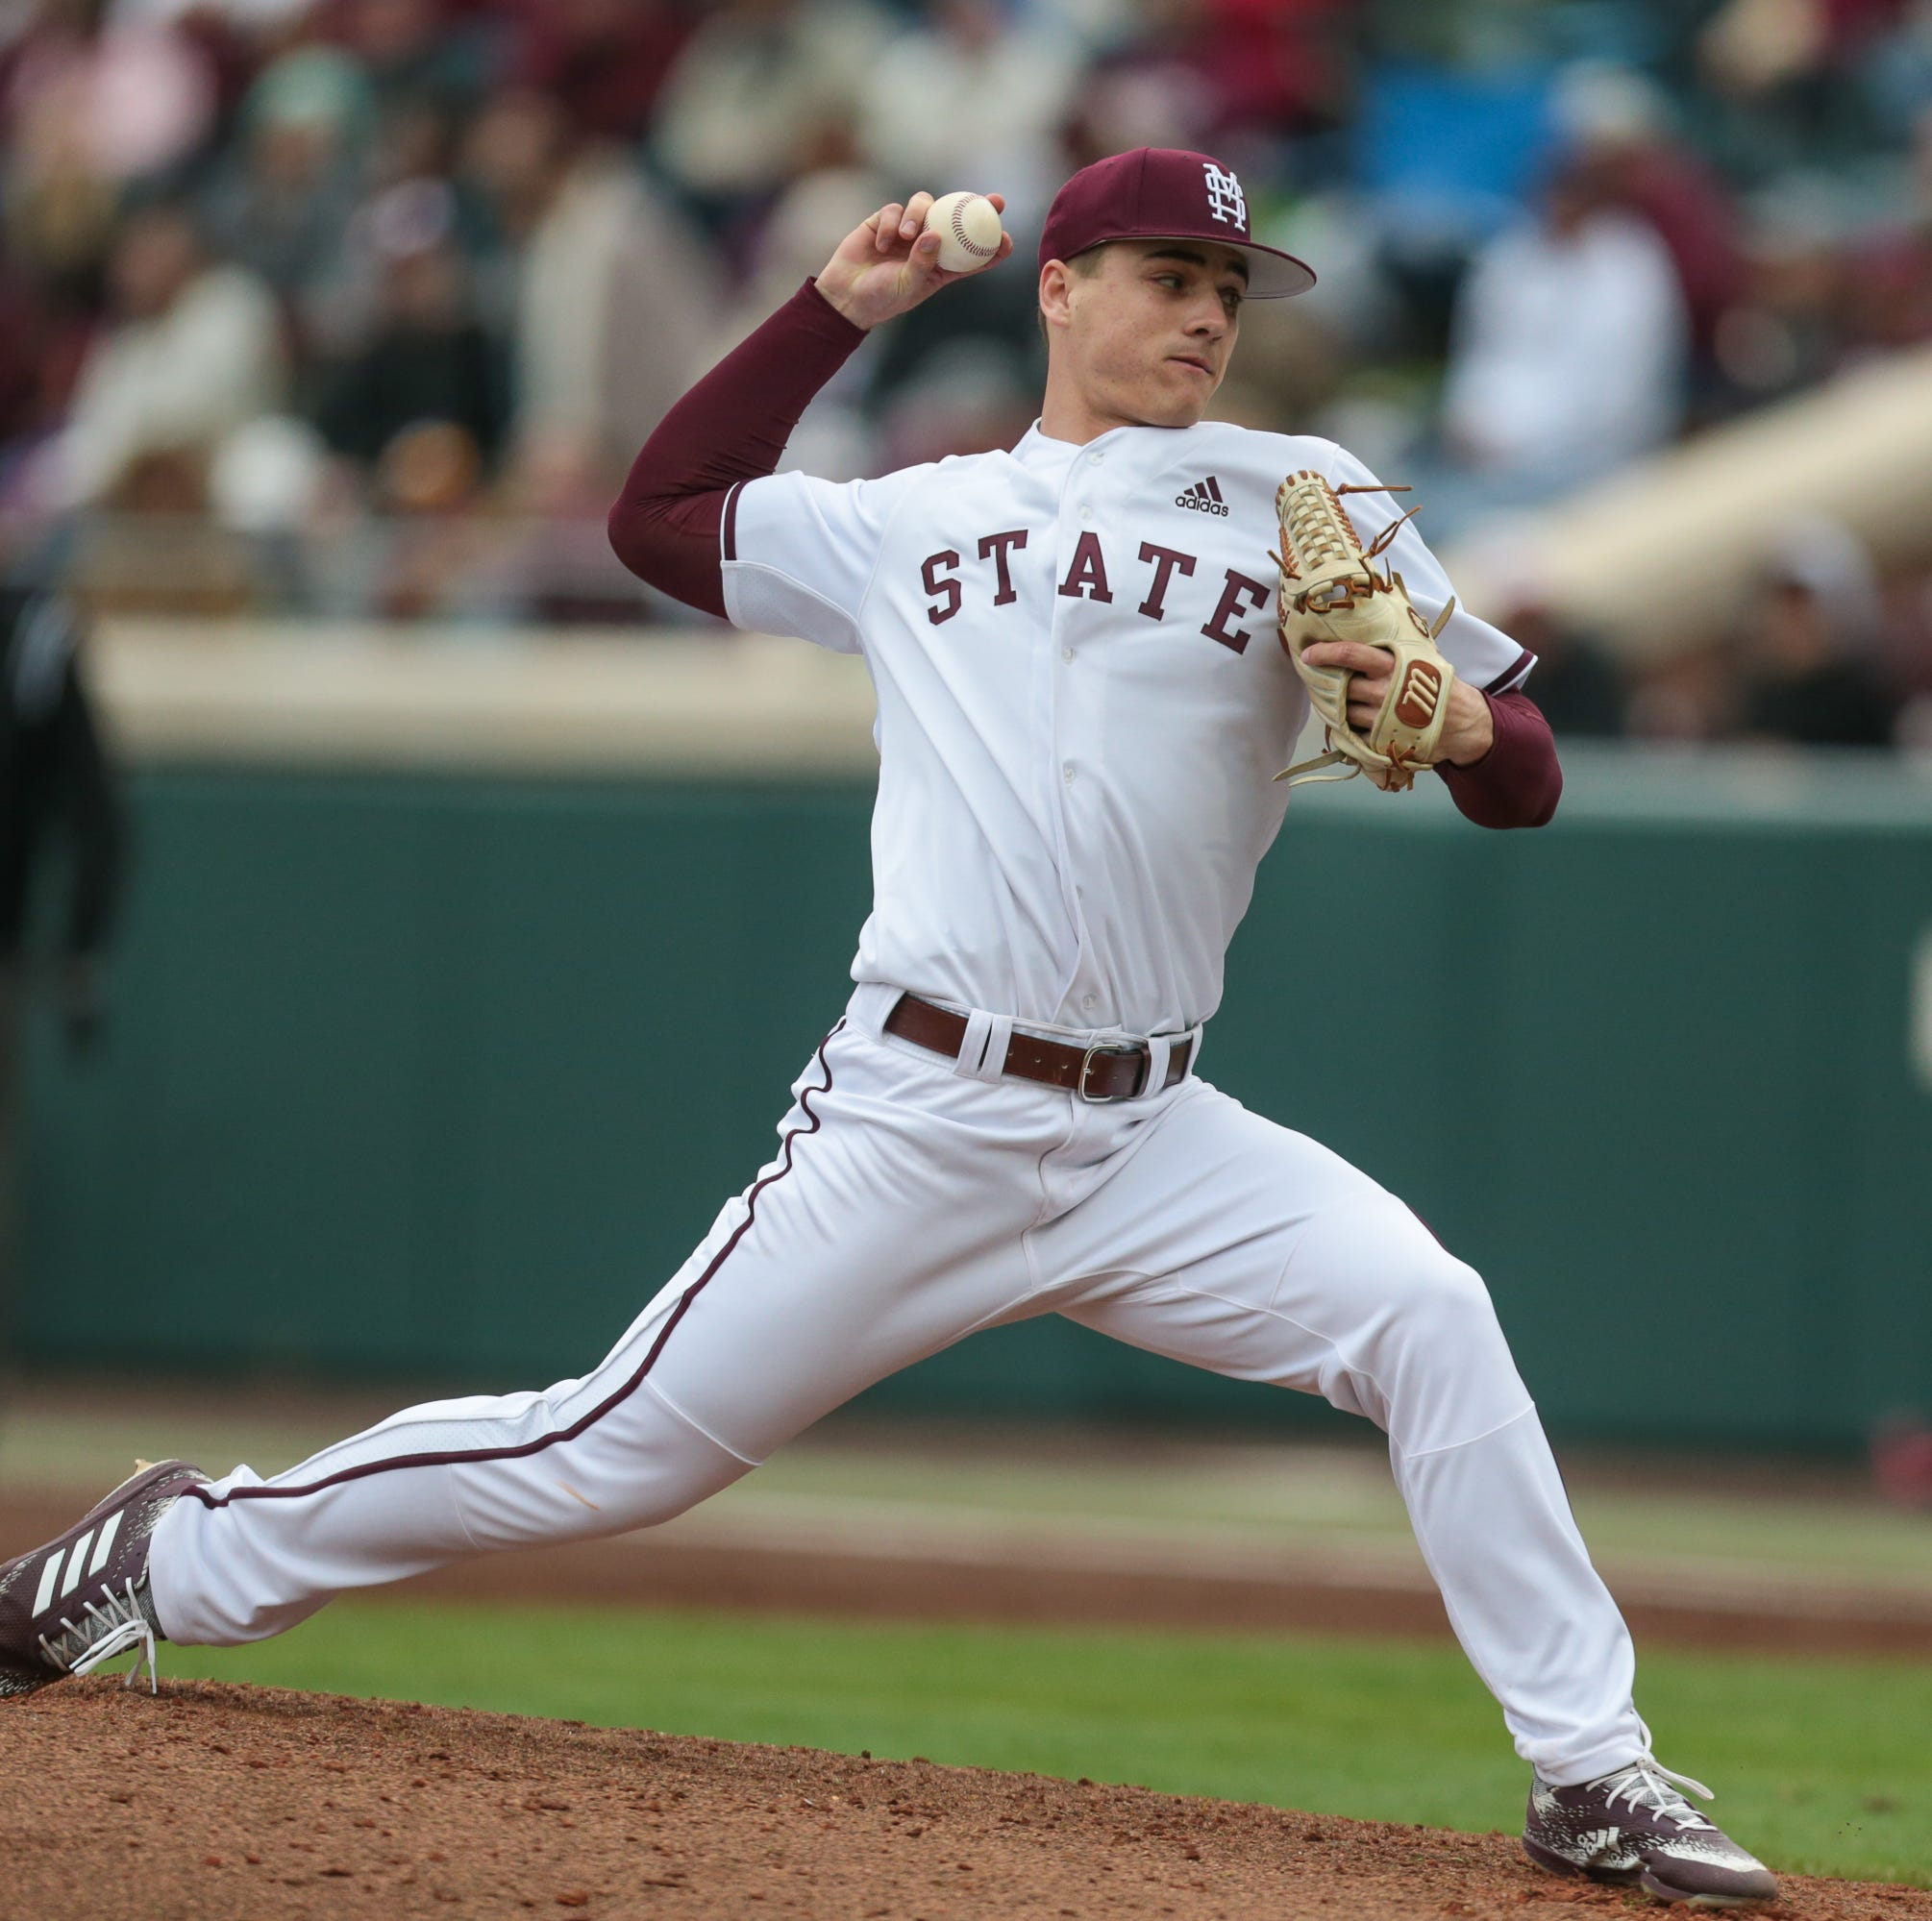 Three takeaways from Mississippi State's second win of 2019 baseball season